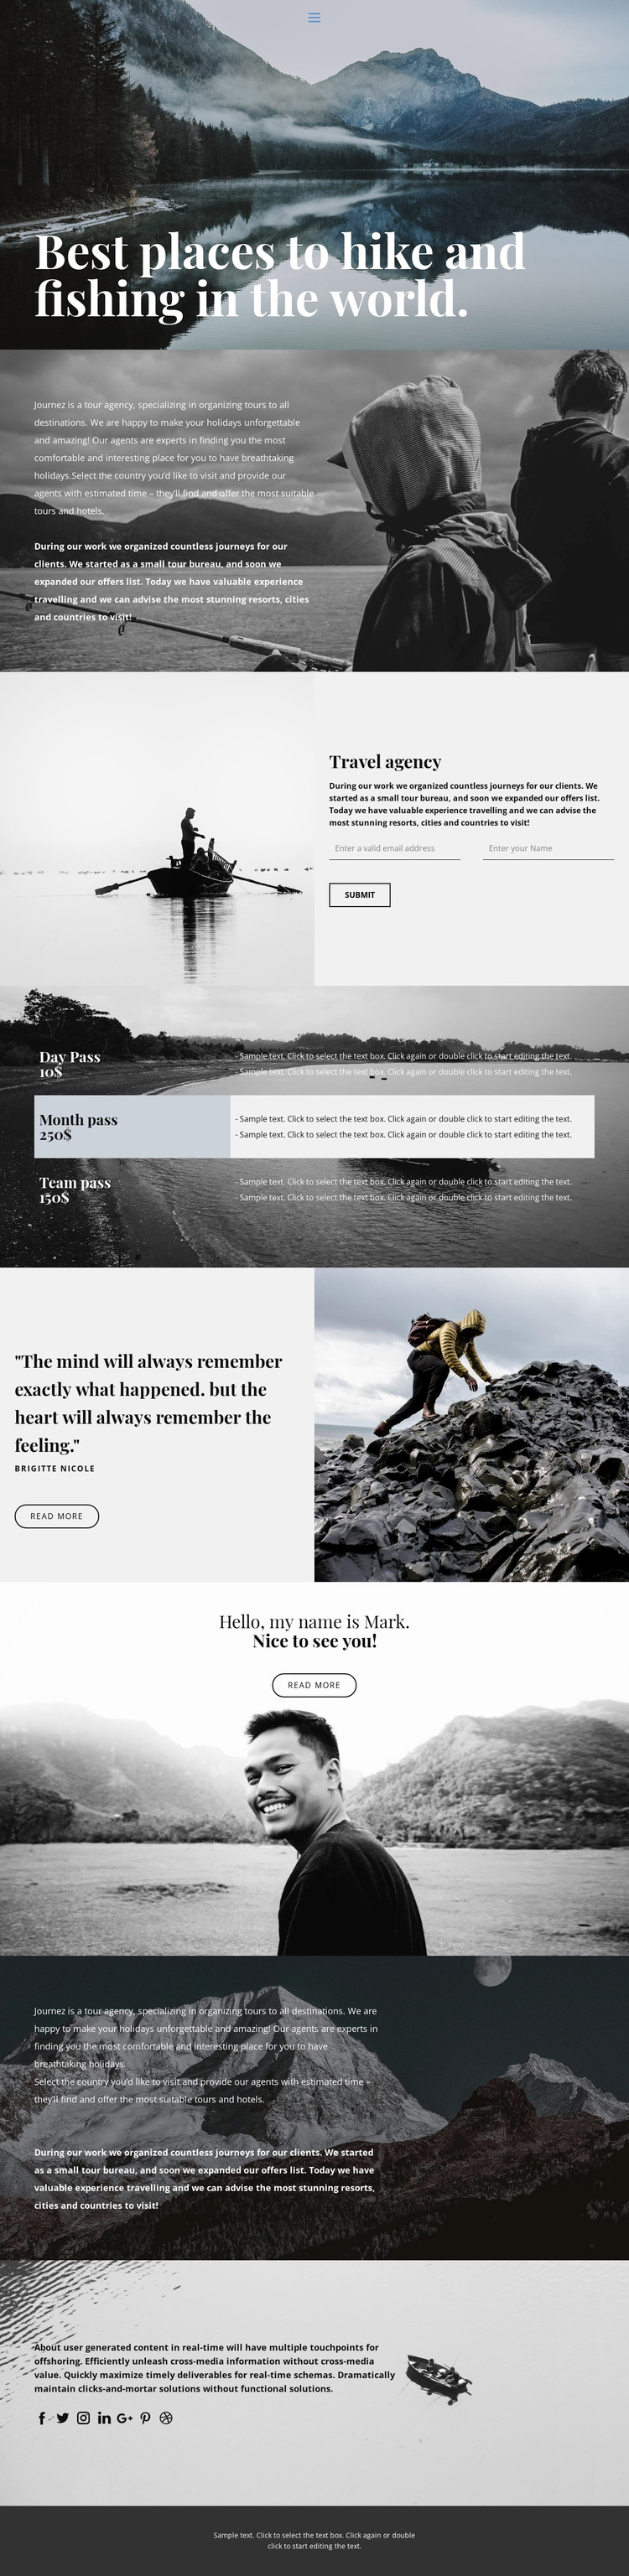 Best places for hiking and fishing WordPress Theme